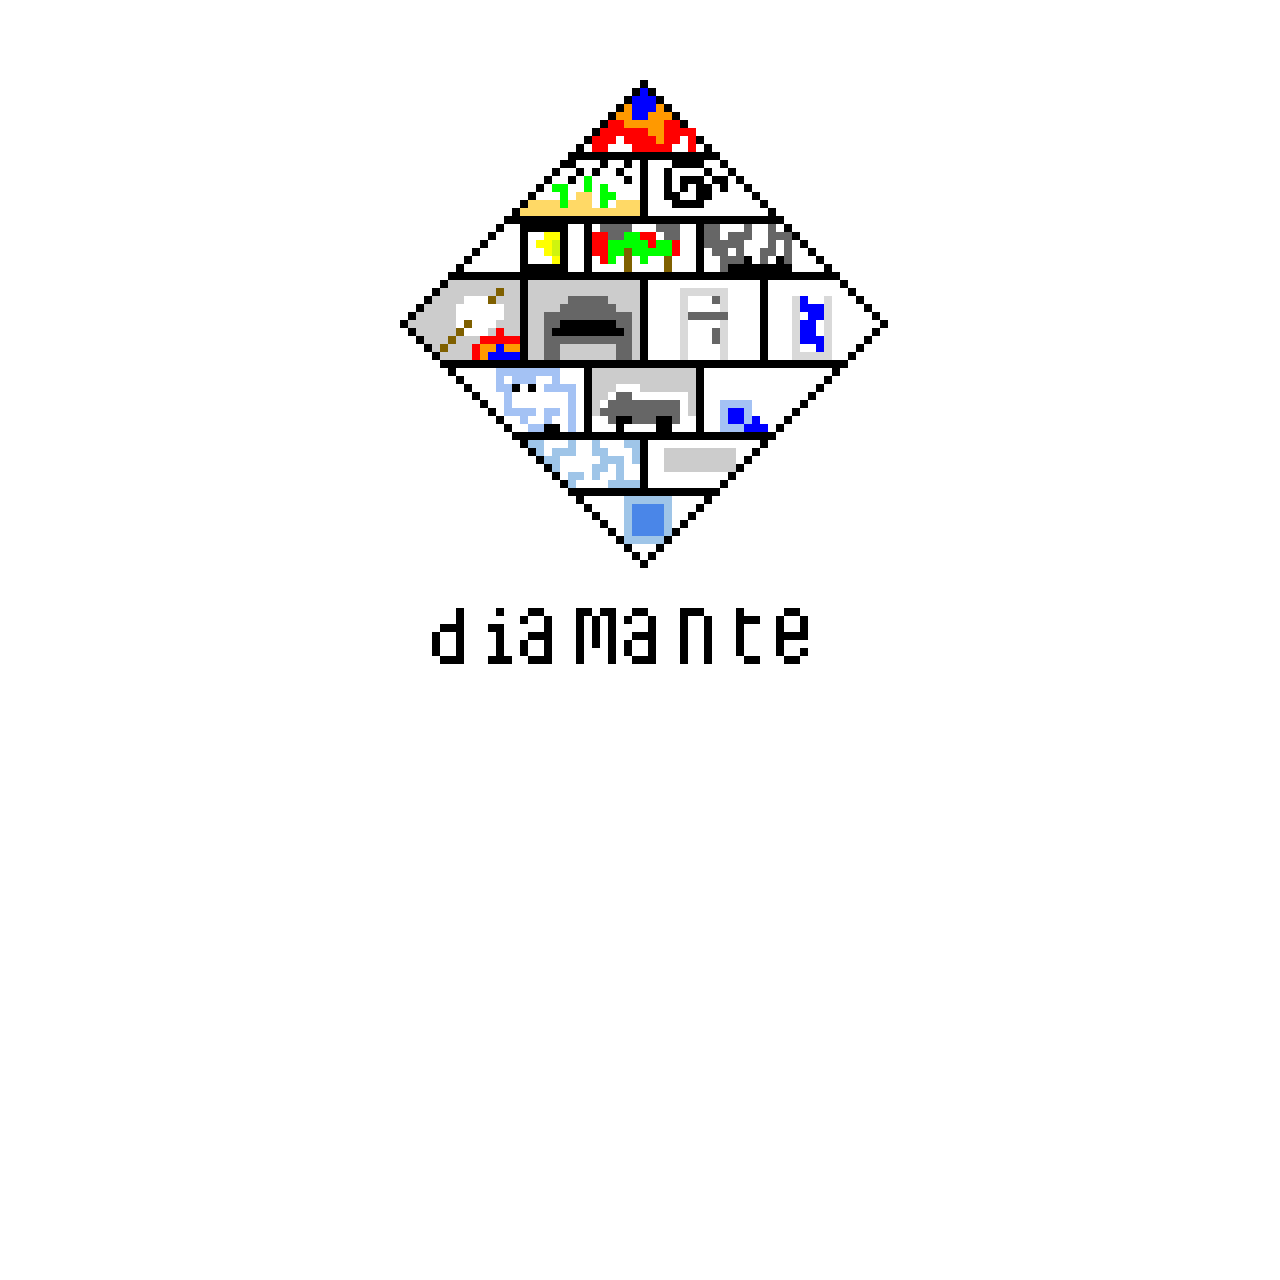 Diamante (i wrote a poem for school and we had to illustrate it tell me what u think)